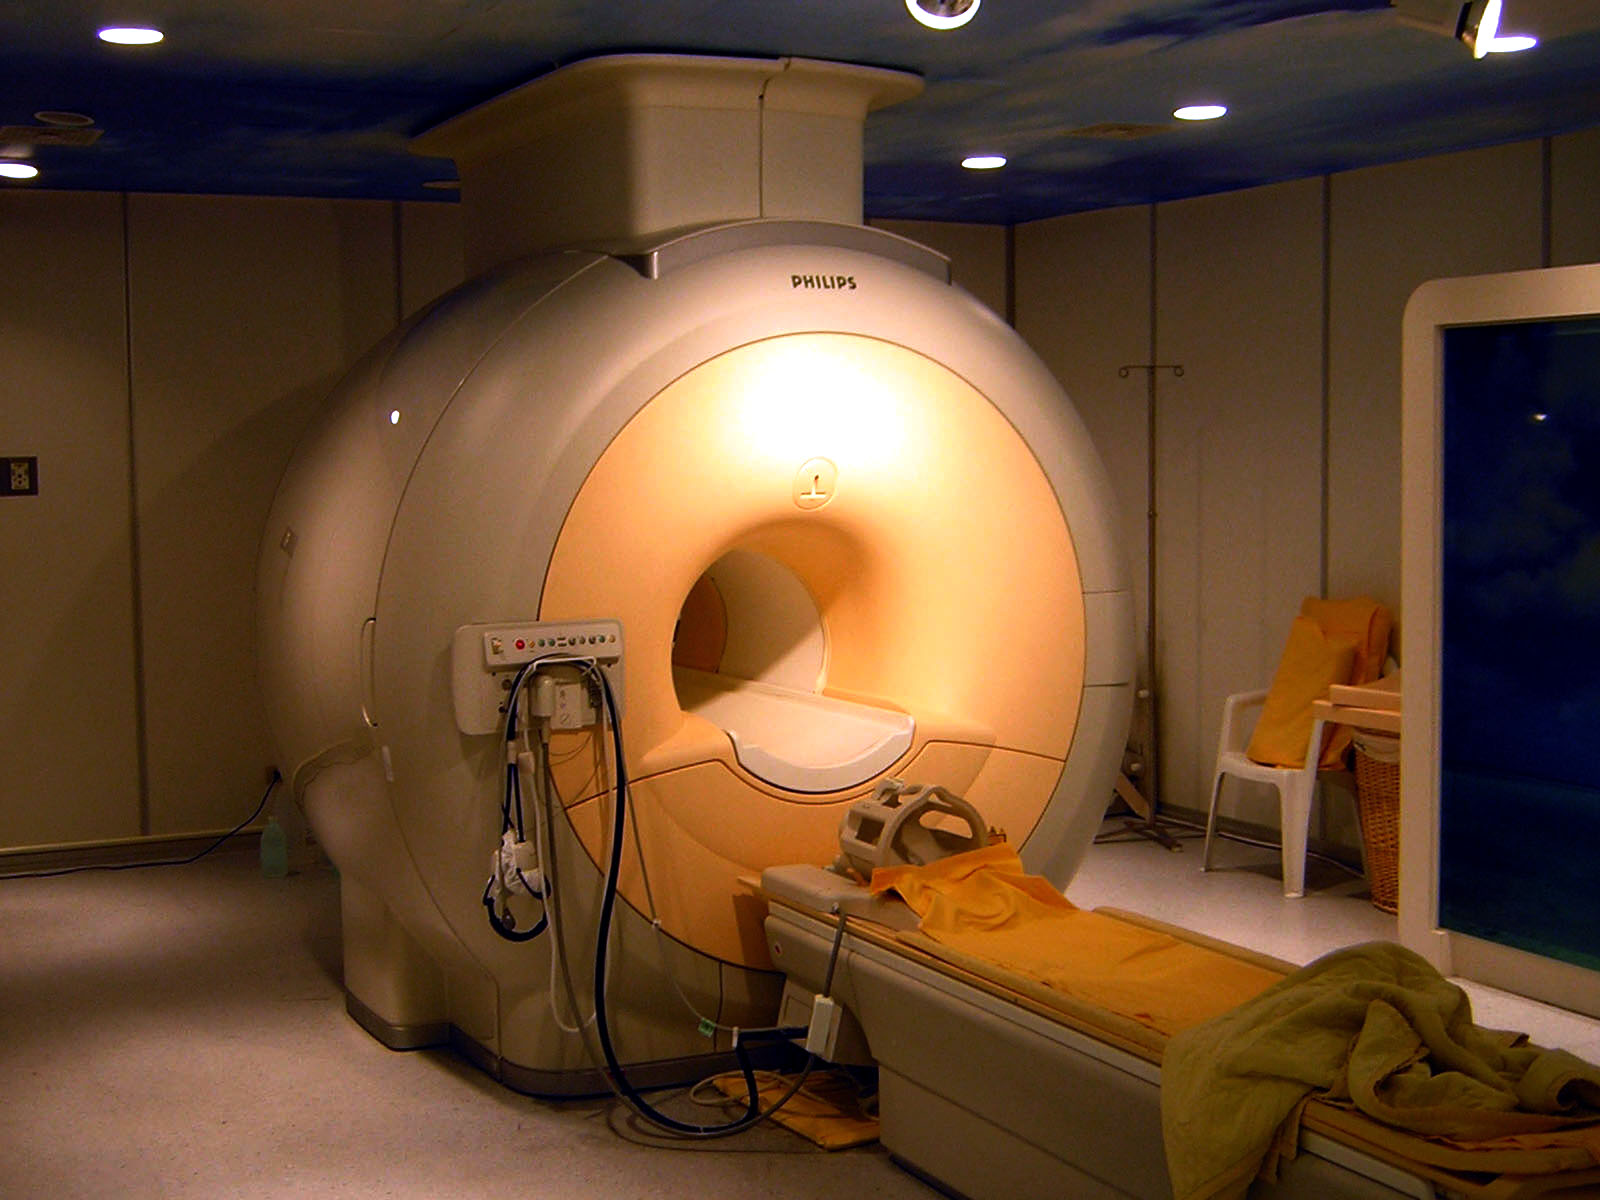 An example of an MRI Scanner